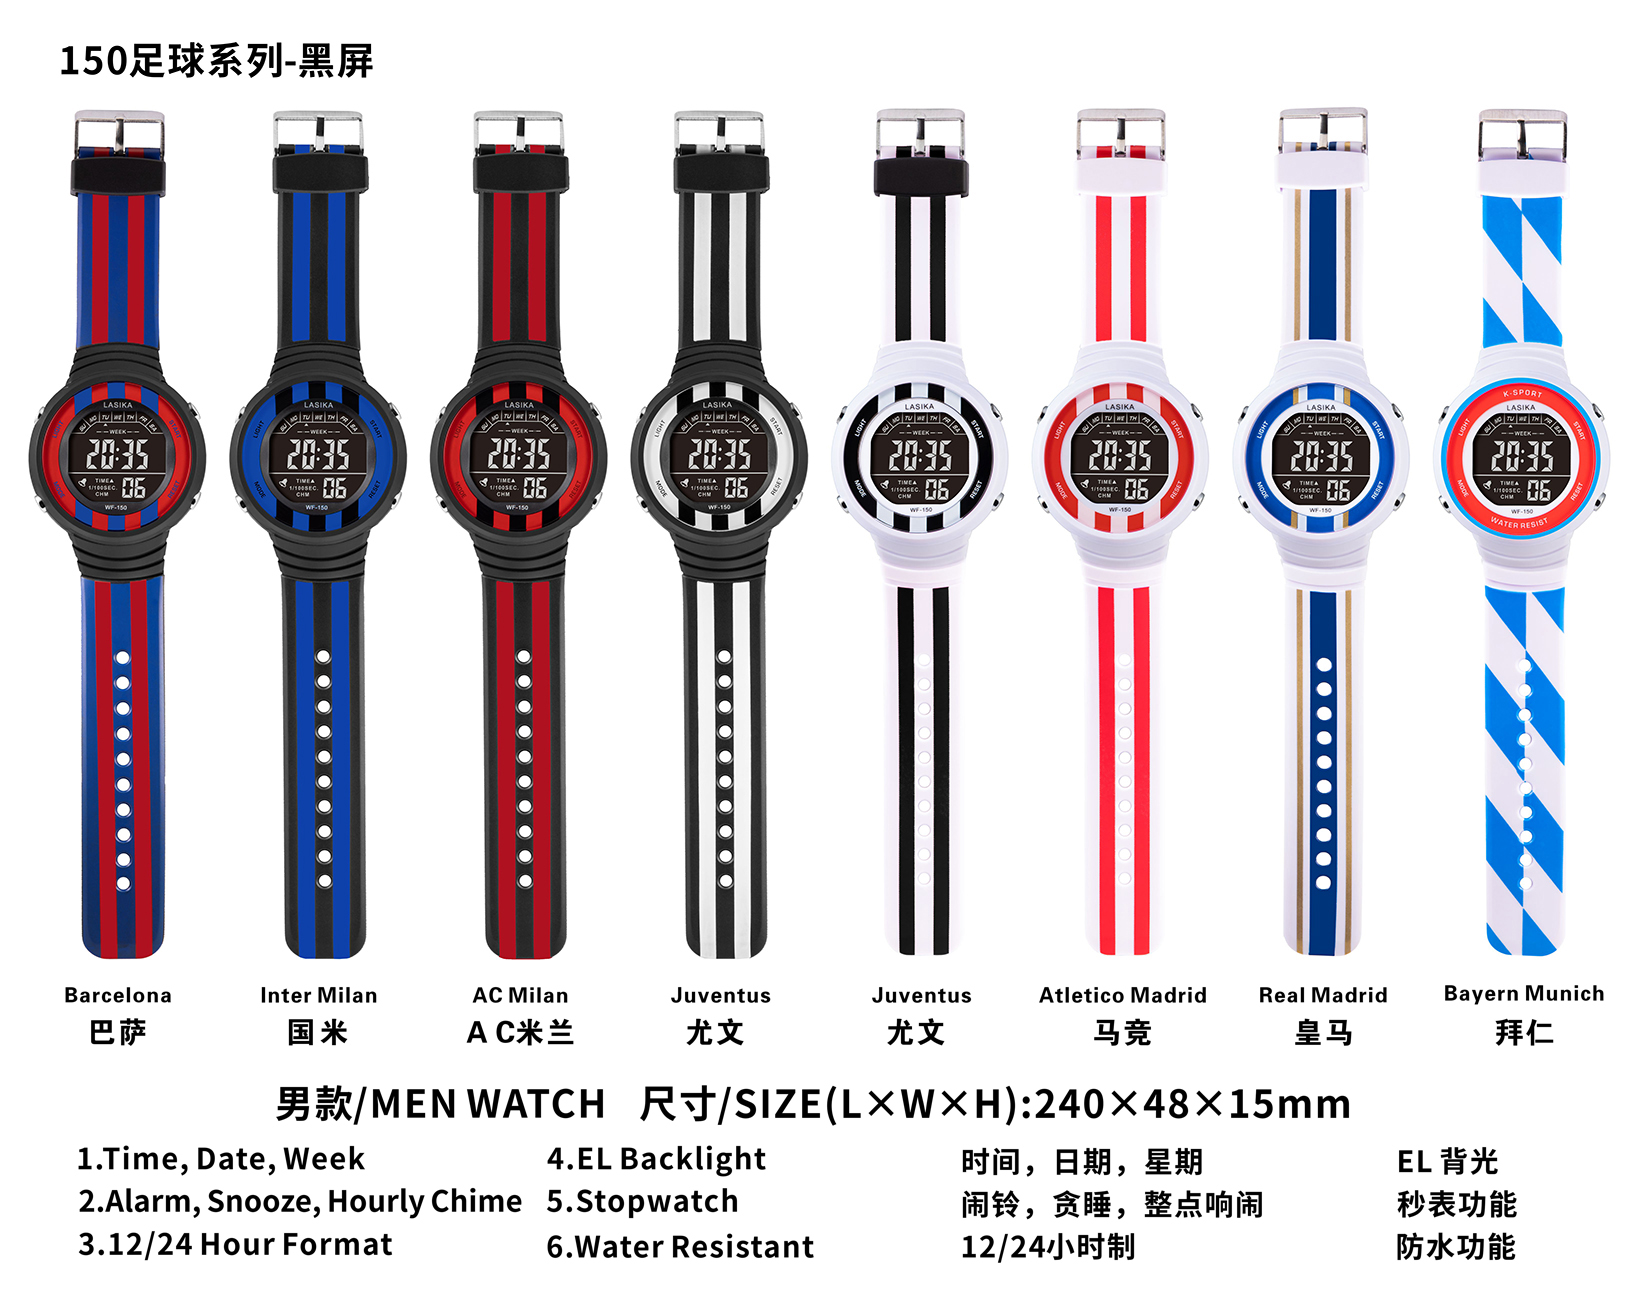 Unisex's Digital Sport Watch Waterproof Digital Watch with 7 Colors Backlight Football Limited Edition #150